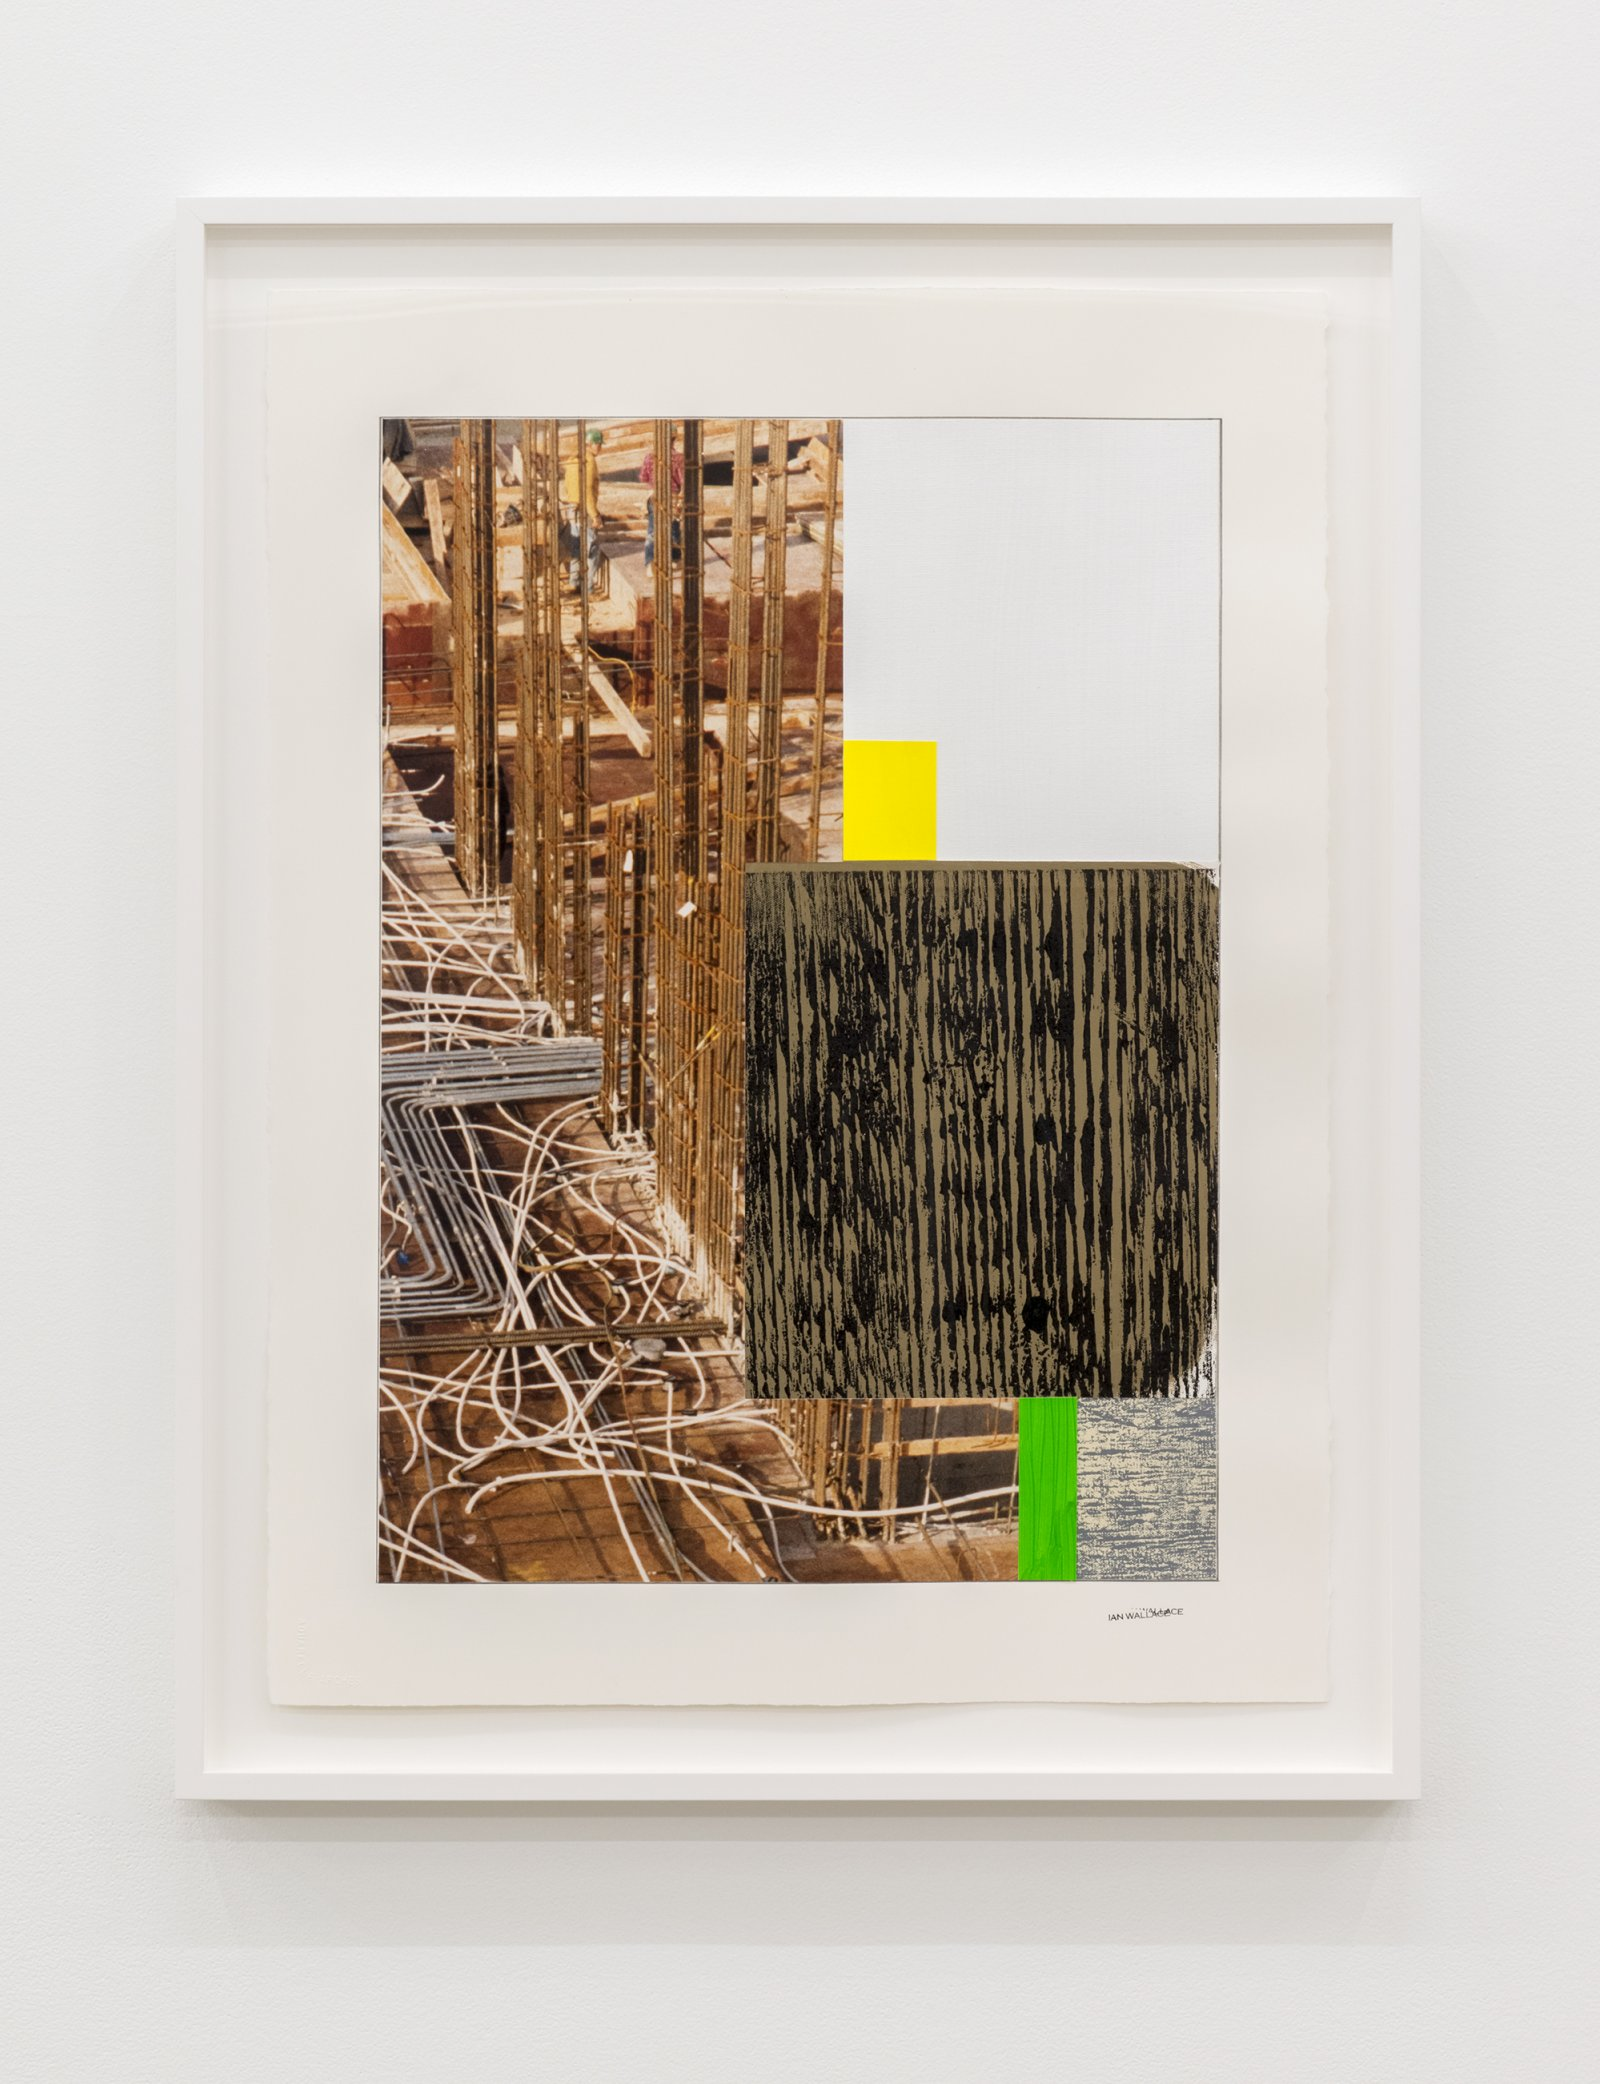 Ian Wallace, Study for Composition with Construction Site II, 1992–2012, paper, pencil, acrylic, photograph, ink, monoprint on canvas, 30 x 23 in. (77 x 57 cm) by Ian Wallace